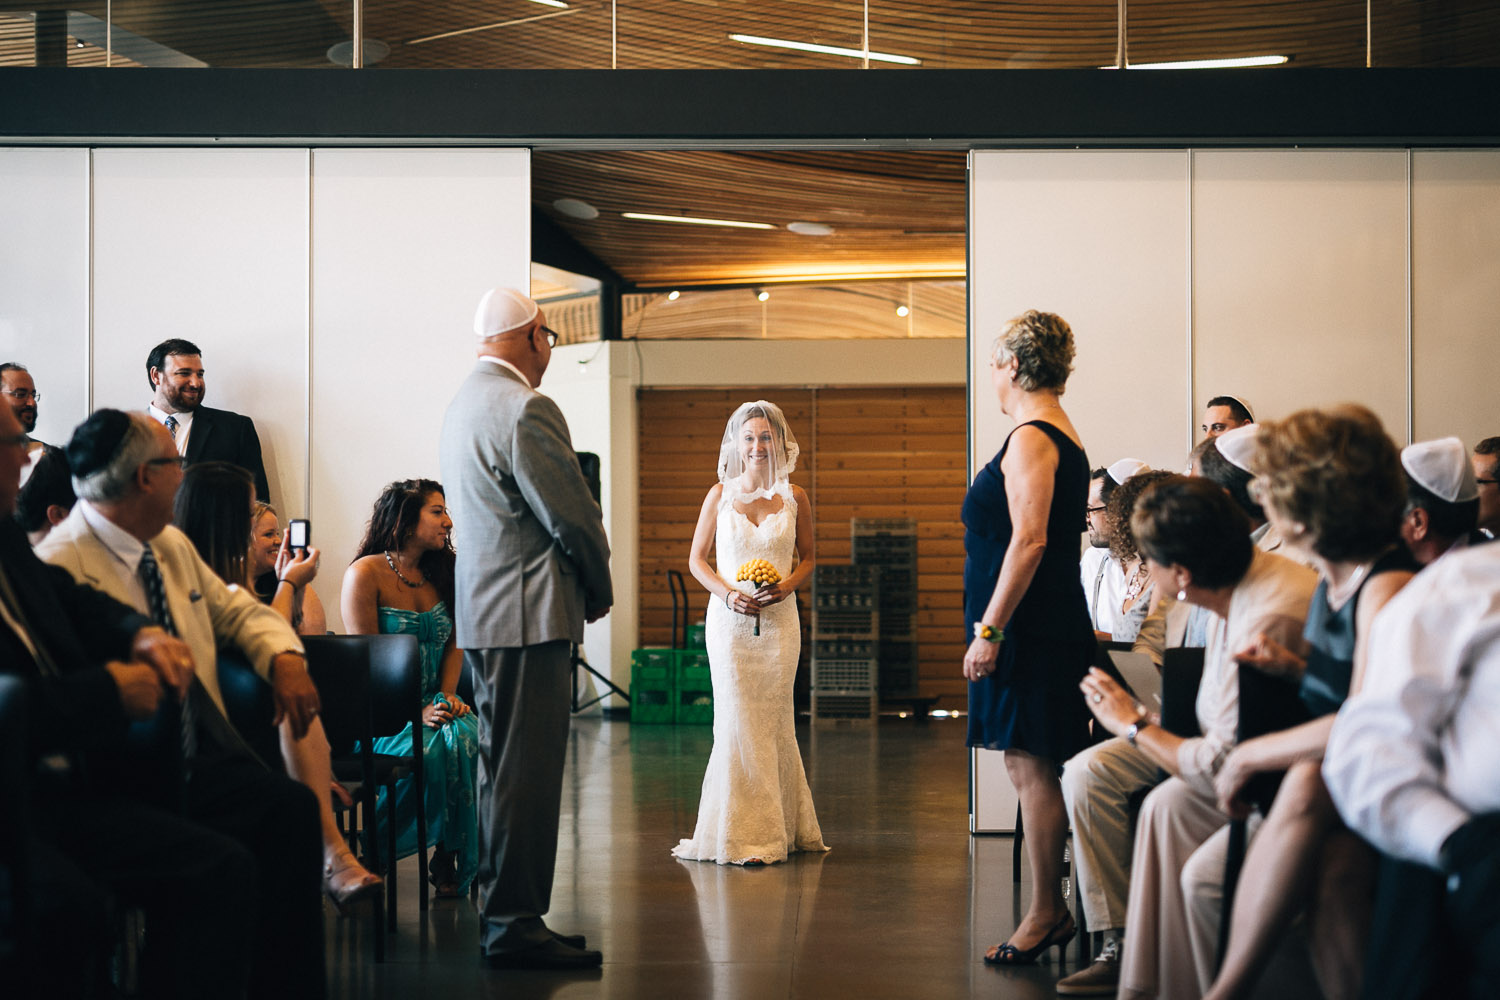 vandusen botanical garden vancouver jewish ceremony wedding photographer noyo creative